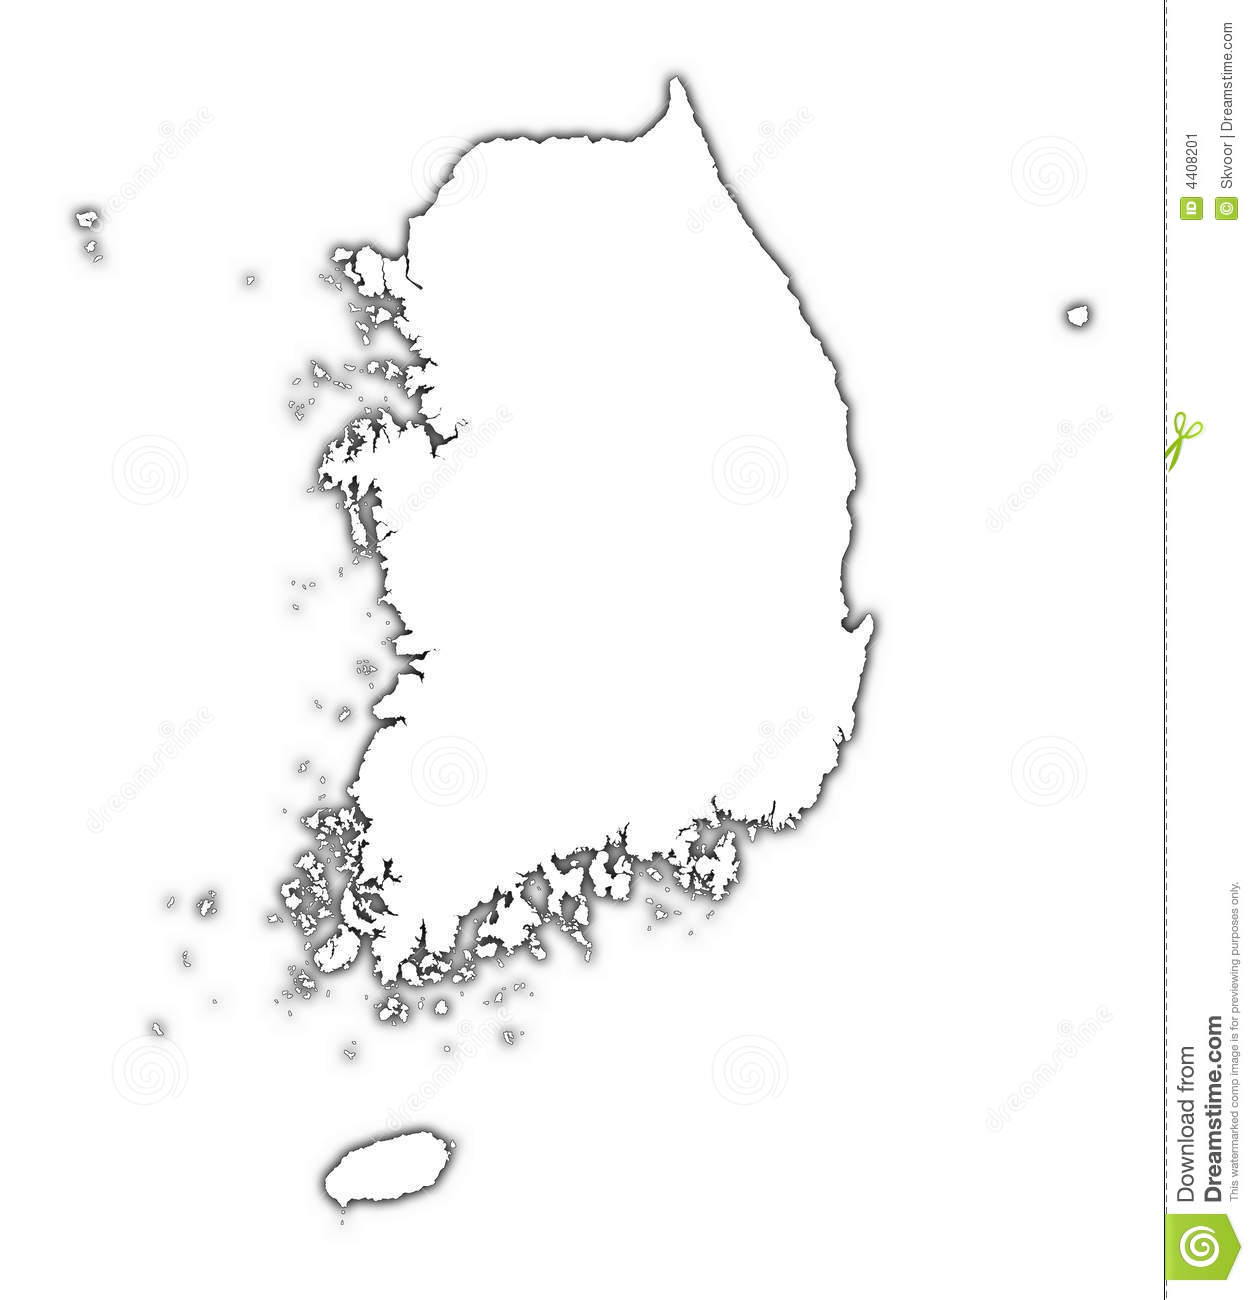 South Korea Outline Map Stock Illustration Image Of High